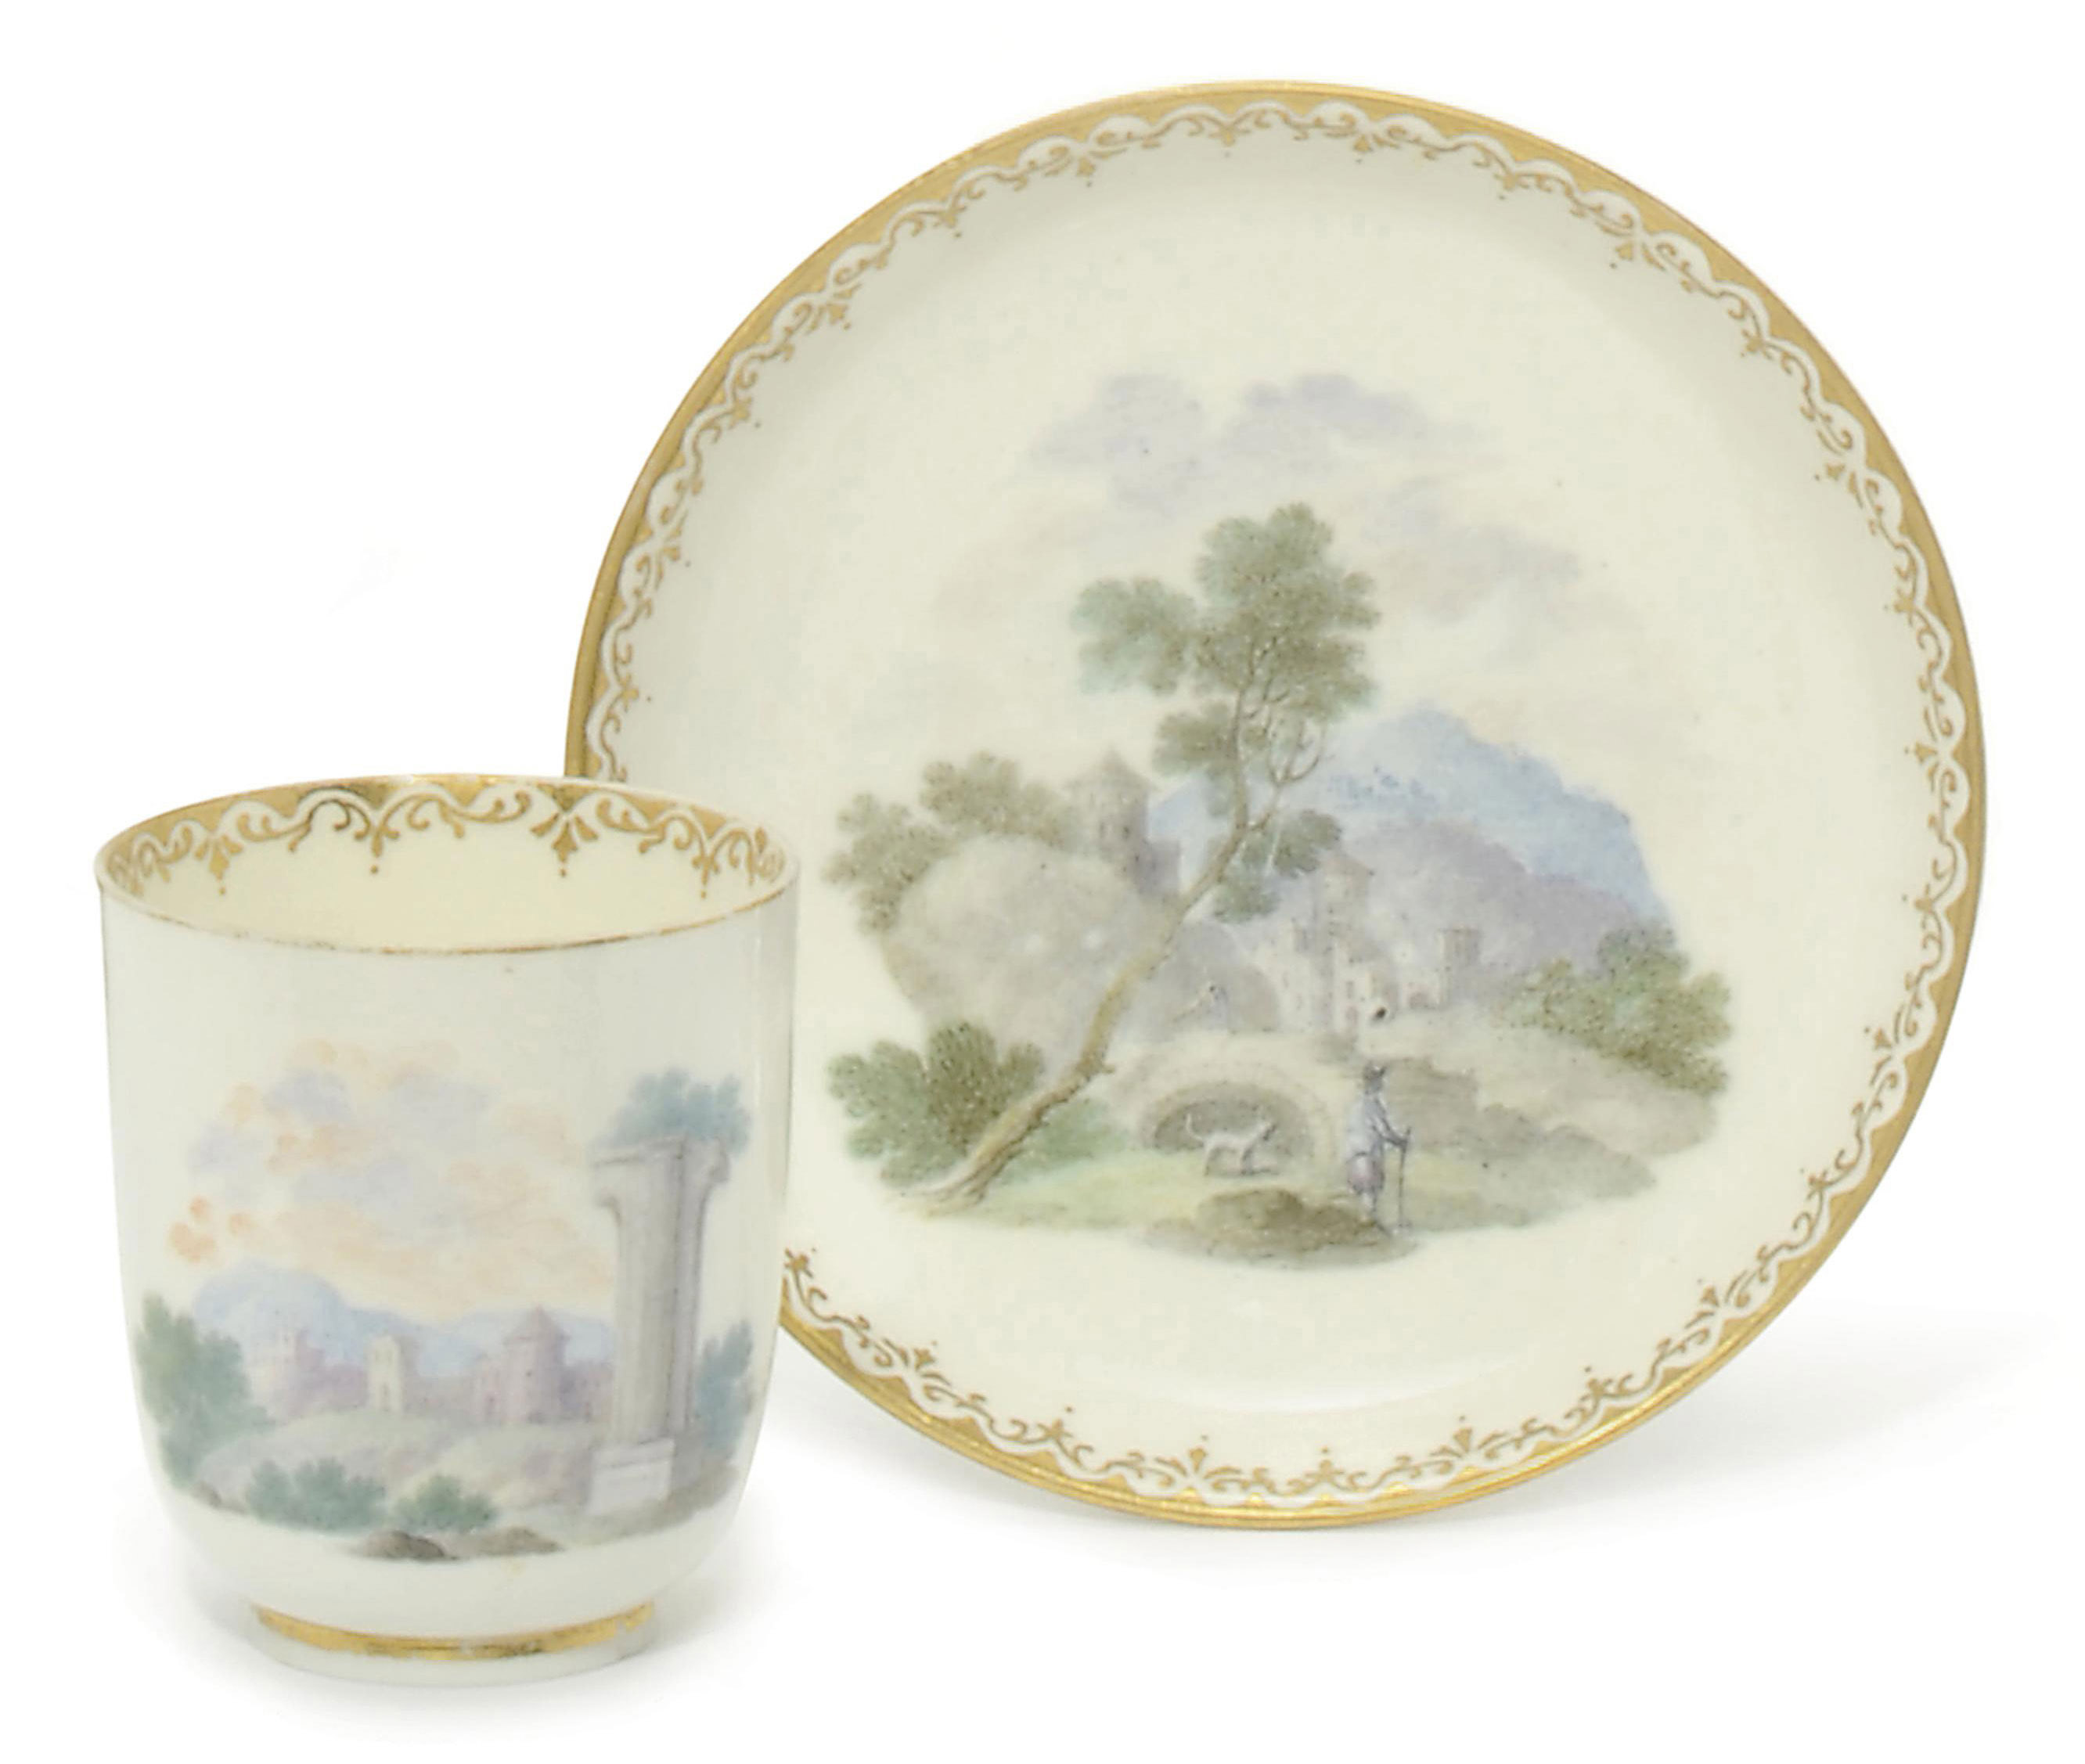 A CAPODIMONTE (CARLO III) CHOCOLATE CUP AND SAUCER